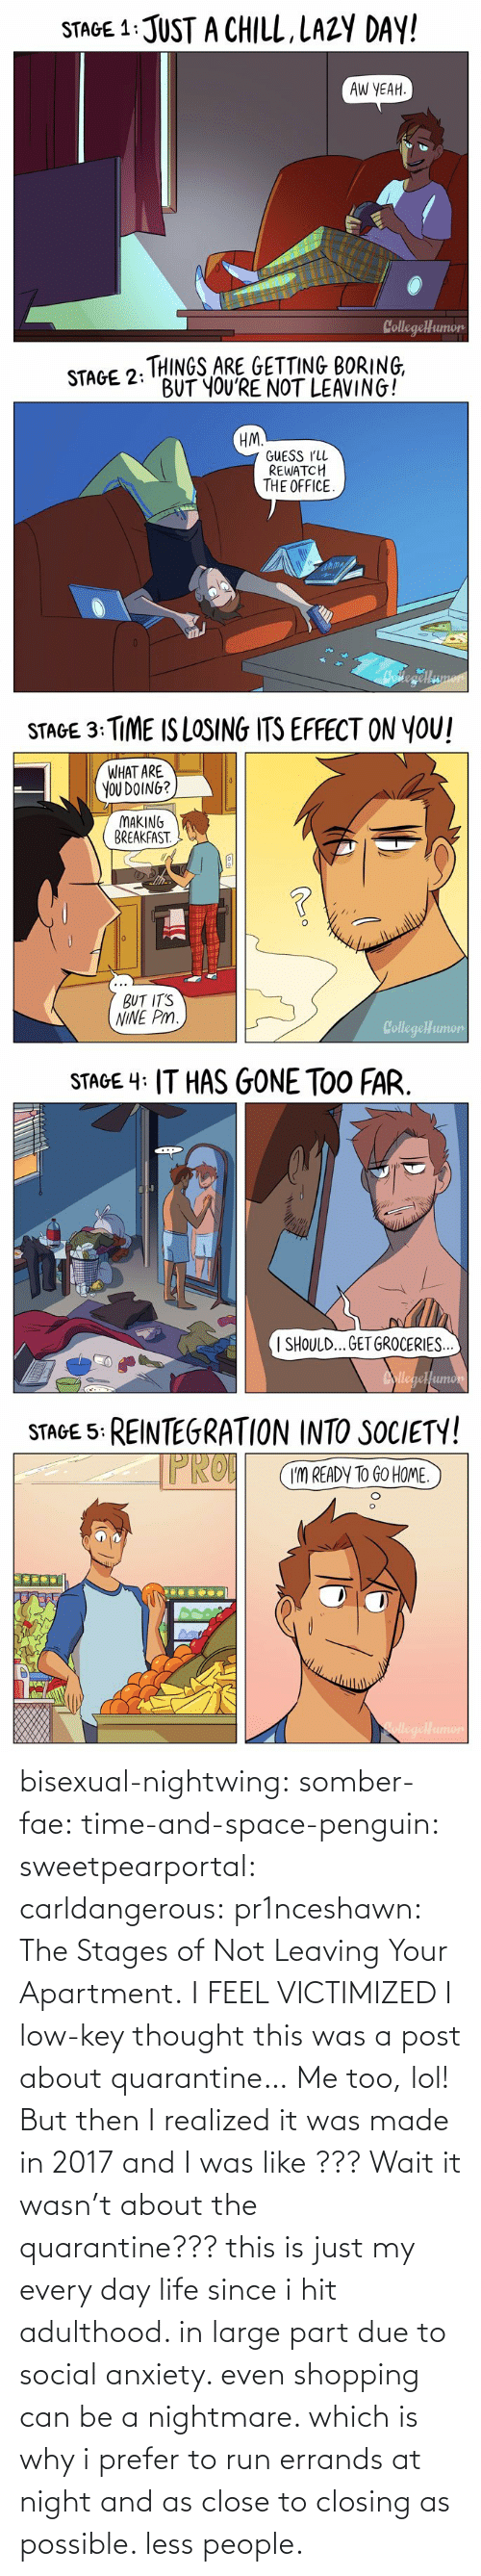 But Then: bisexual-nightwing:  somber-fae: time-and-space-penguin:  sweetpearportal:   carldangerous:  pr1nceshawn: The Stages of Not Leaving Your Apartment. I FEEL VICTIMIZED    I low-key thought this was a post about quarantine…     Me too, lol! But then I realized it was made in 2017 and I was like ???    Wait it wasn't about the quarantine???     this is just my every day life since i hit adulthood. in large part due to social anxiety. even shopping can be a nightmare. which is why i prefer to run errands at night and as close to closing as possible. less people.